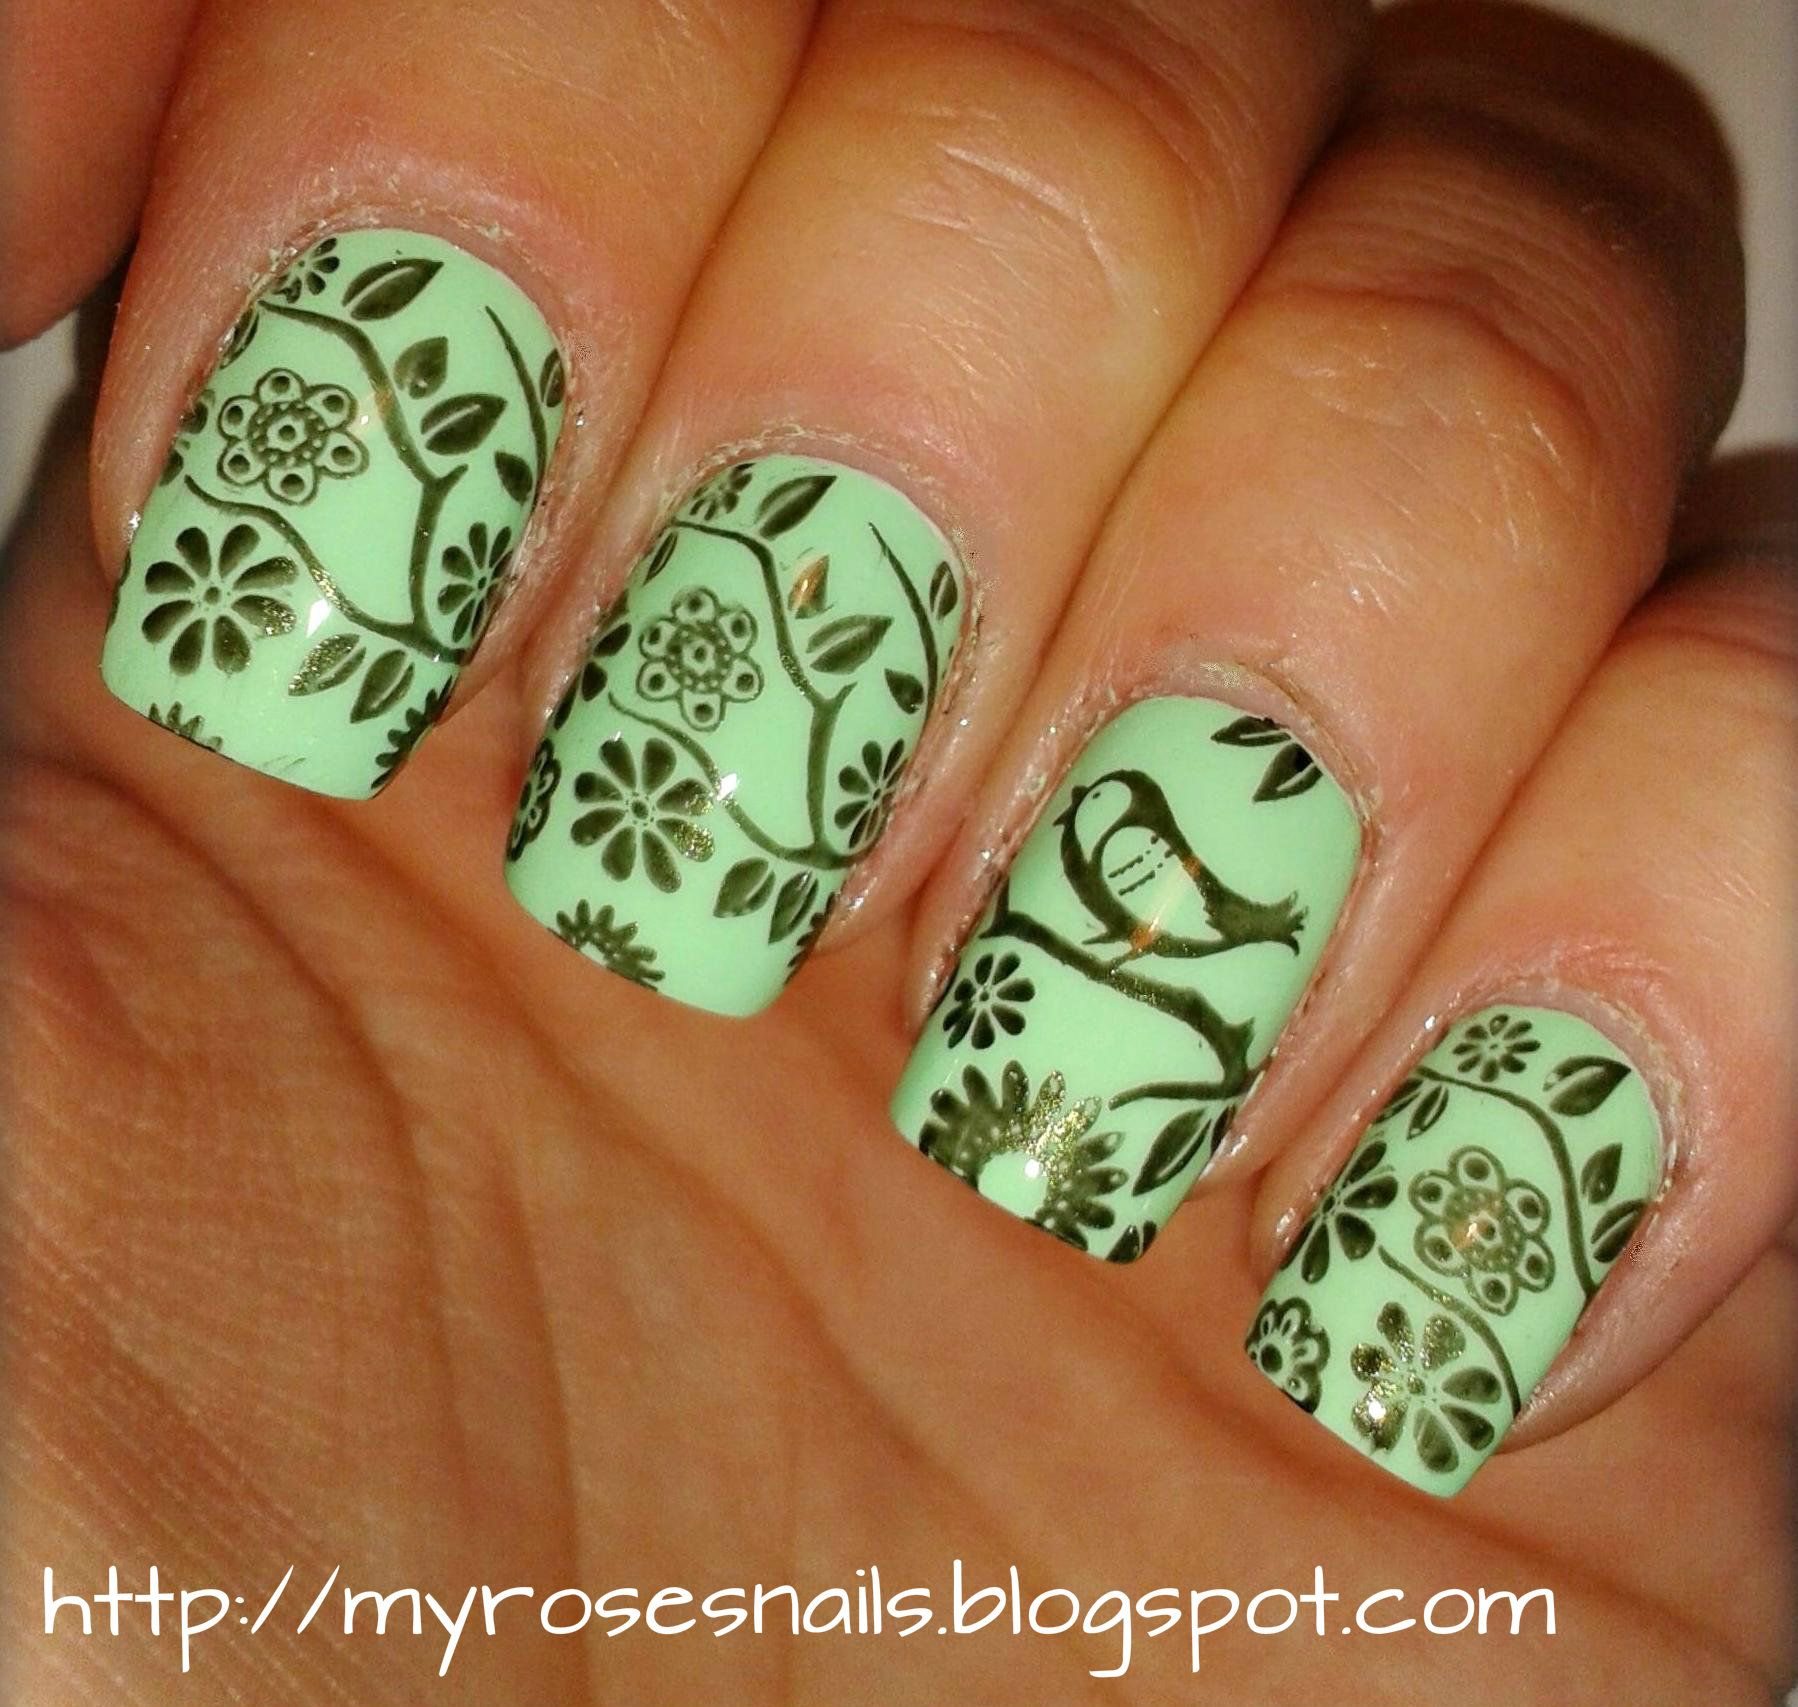 Birds on trees with MoYou London | My nails art | Pinterest